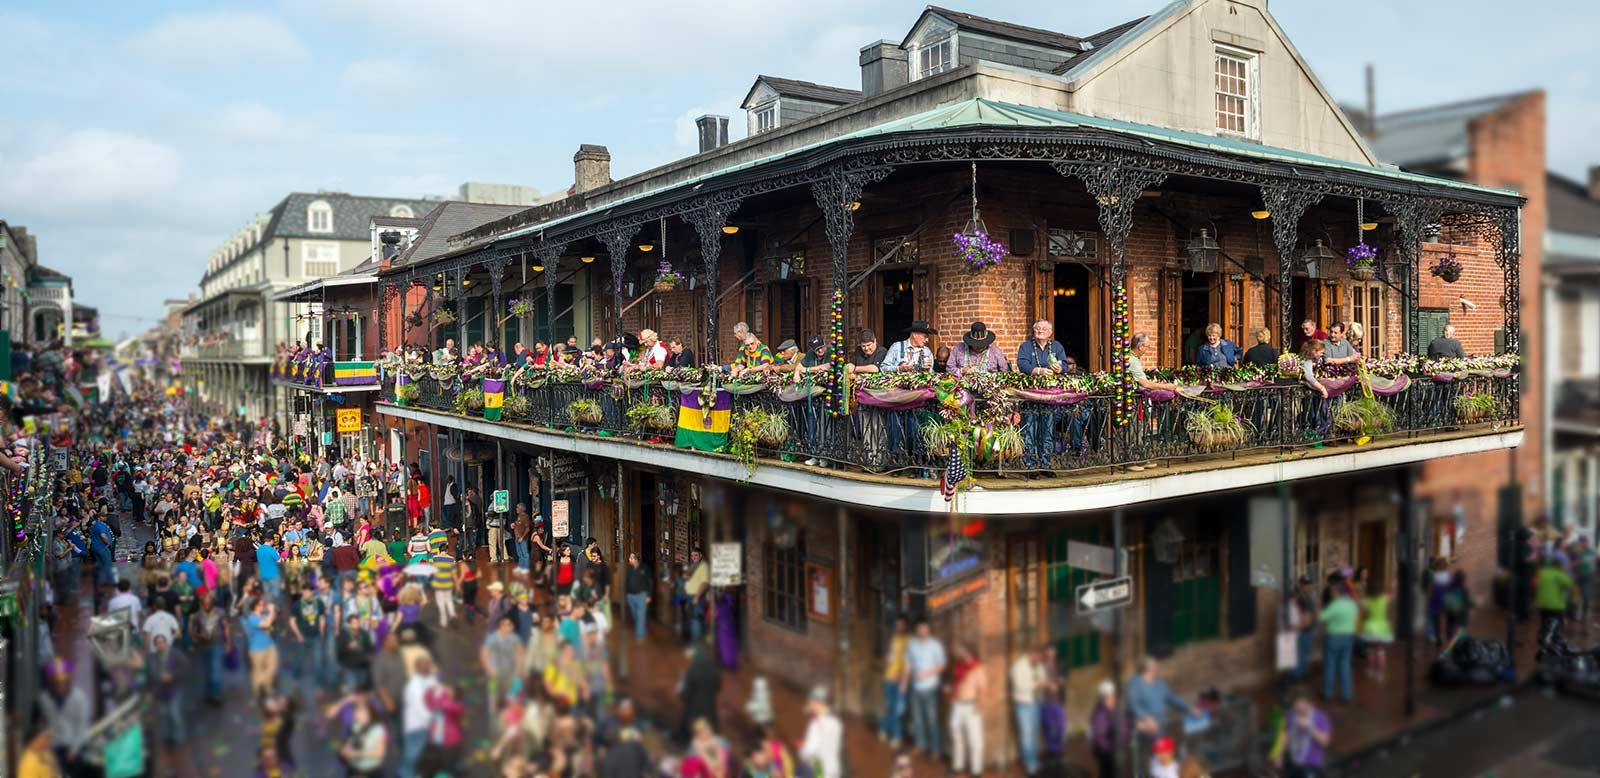 Best Time To Go To Mardi Gras 2020 When is Mardi Gras 2020?   Mardi Gras New Orleans